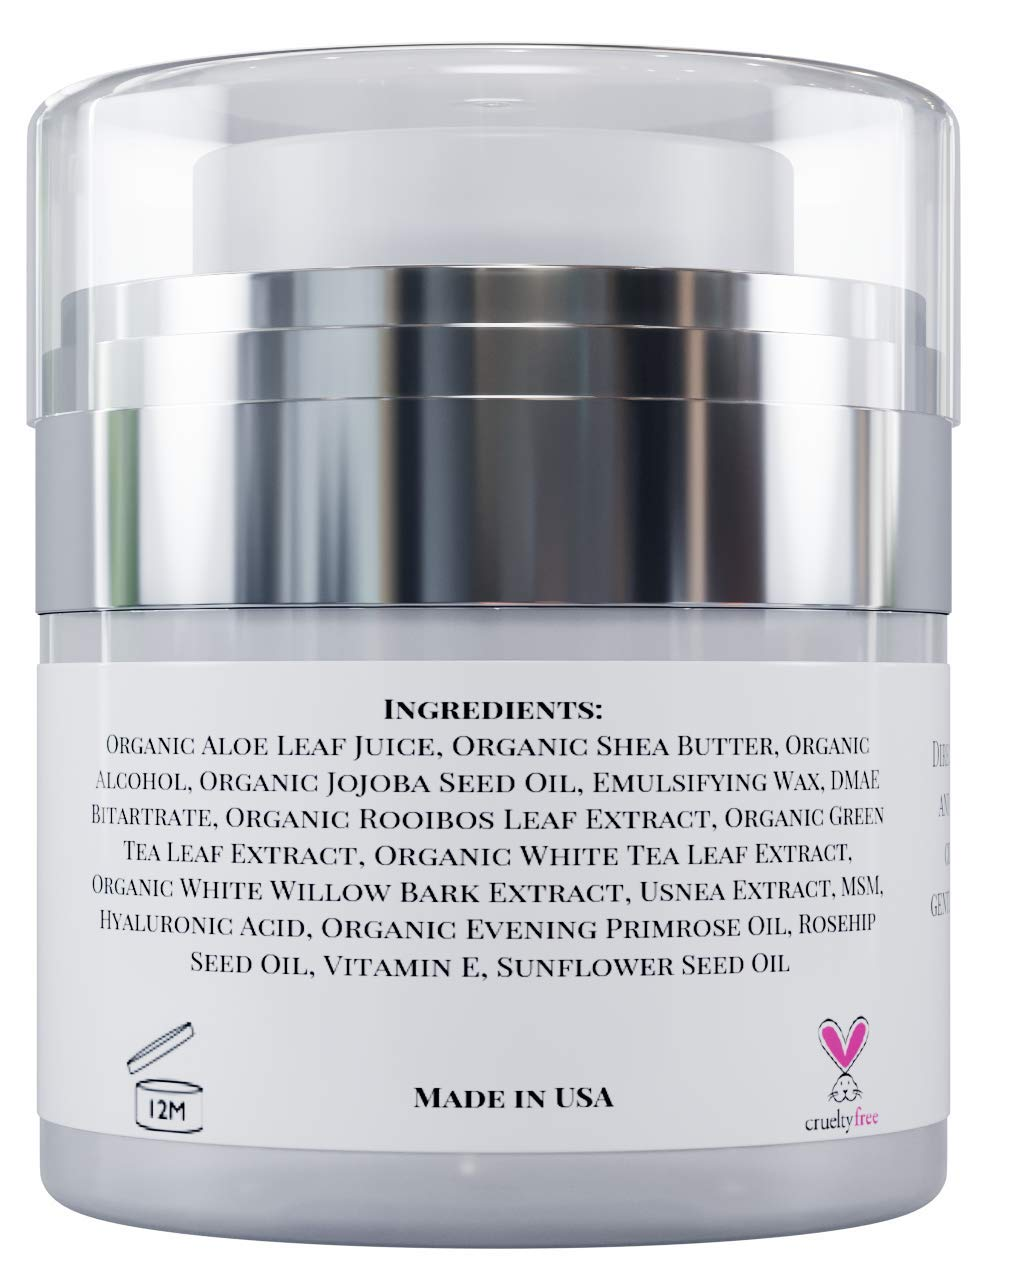 Natural Anti Aging Face Cream with Hyaluronic Acid, Vitamin E and Rosehip Oil. Day and Night Anti Wrinkle Moisturizer for All Skin Types Organic Ingredients Ultra Hydration and Glow 1 oz.